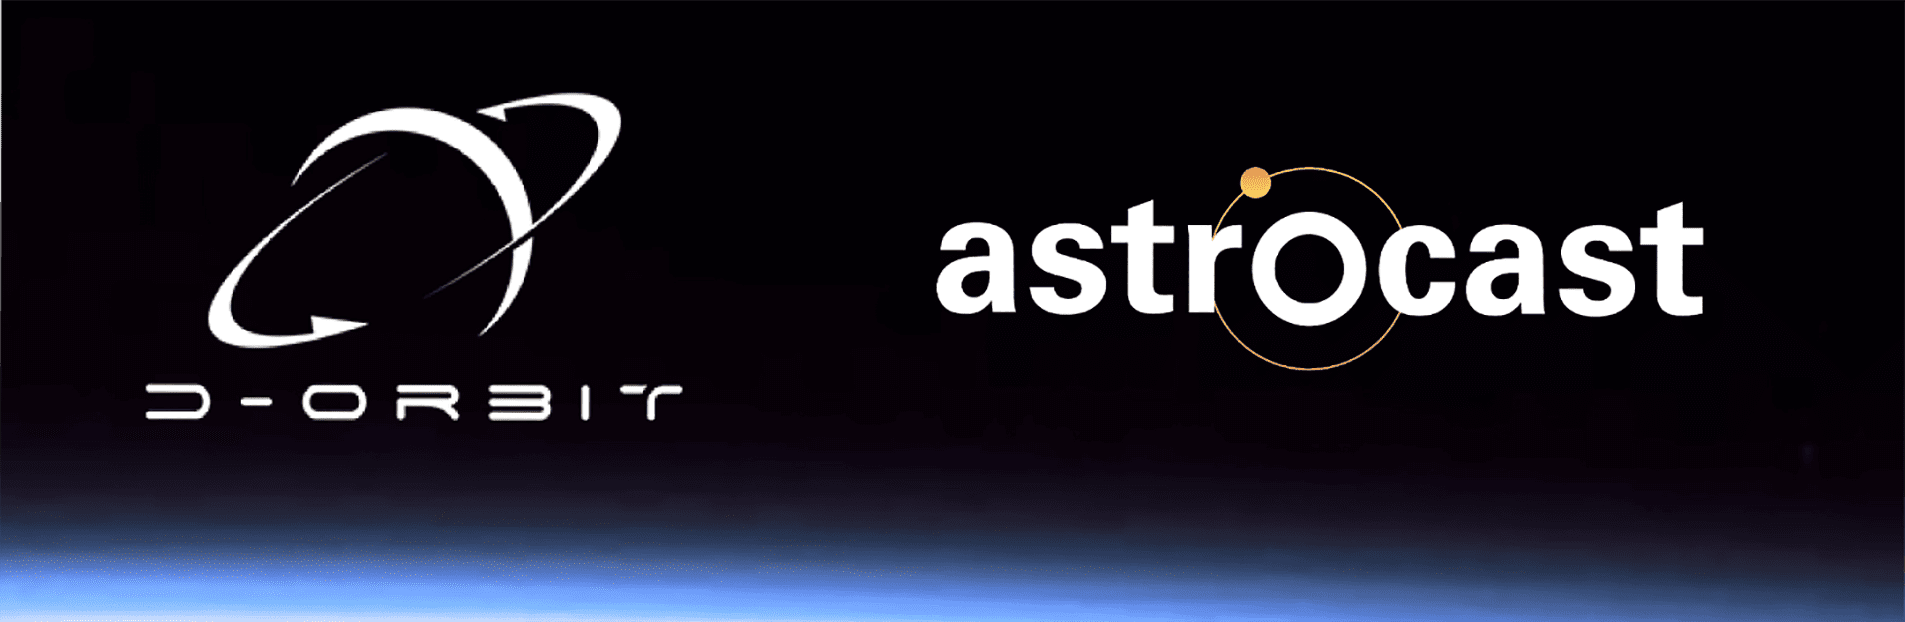 astrocast_d-orbit-new-inorbit-launch